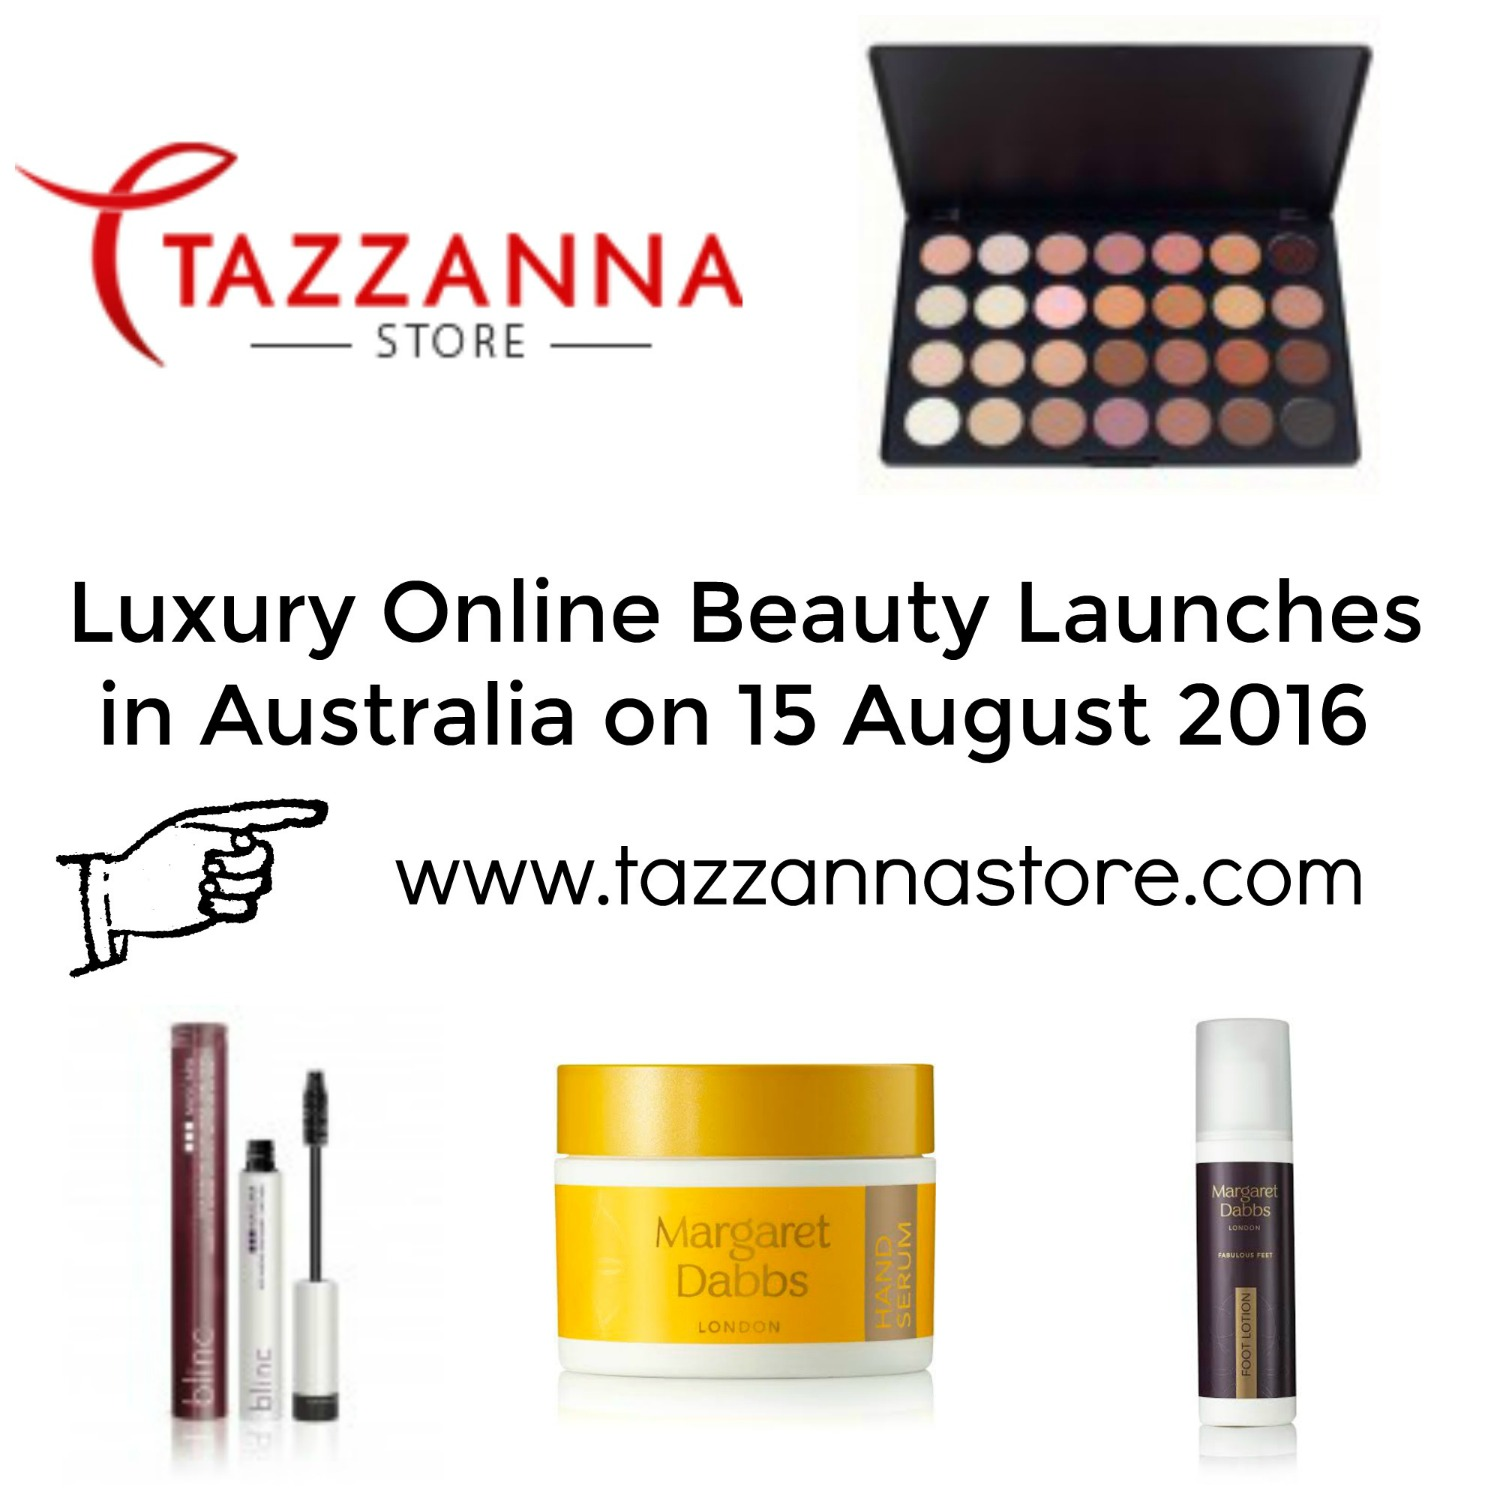 Beauty: News Flash! Tazzanna - luxury online beauty launches in Australia